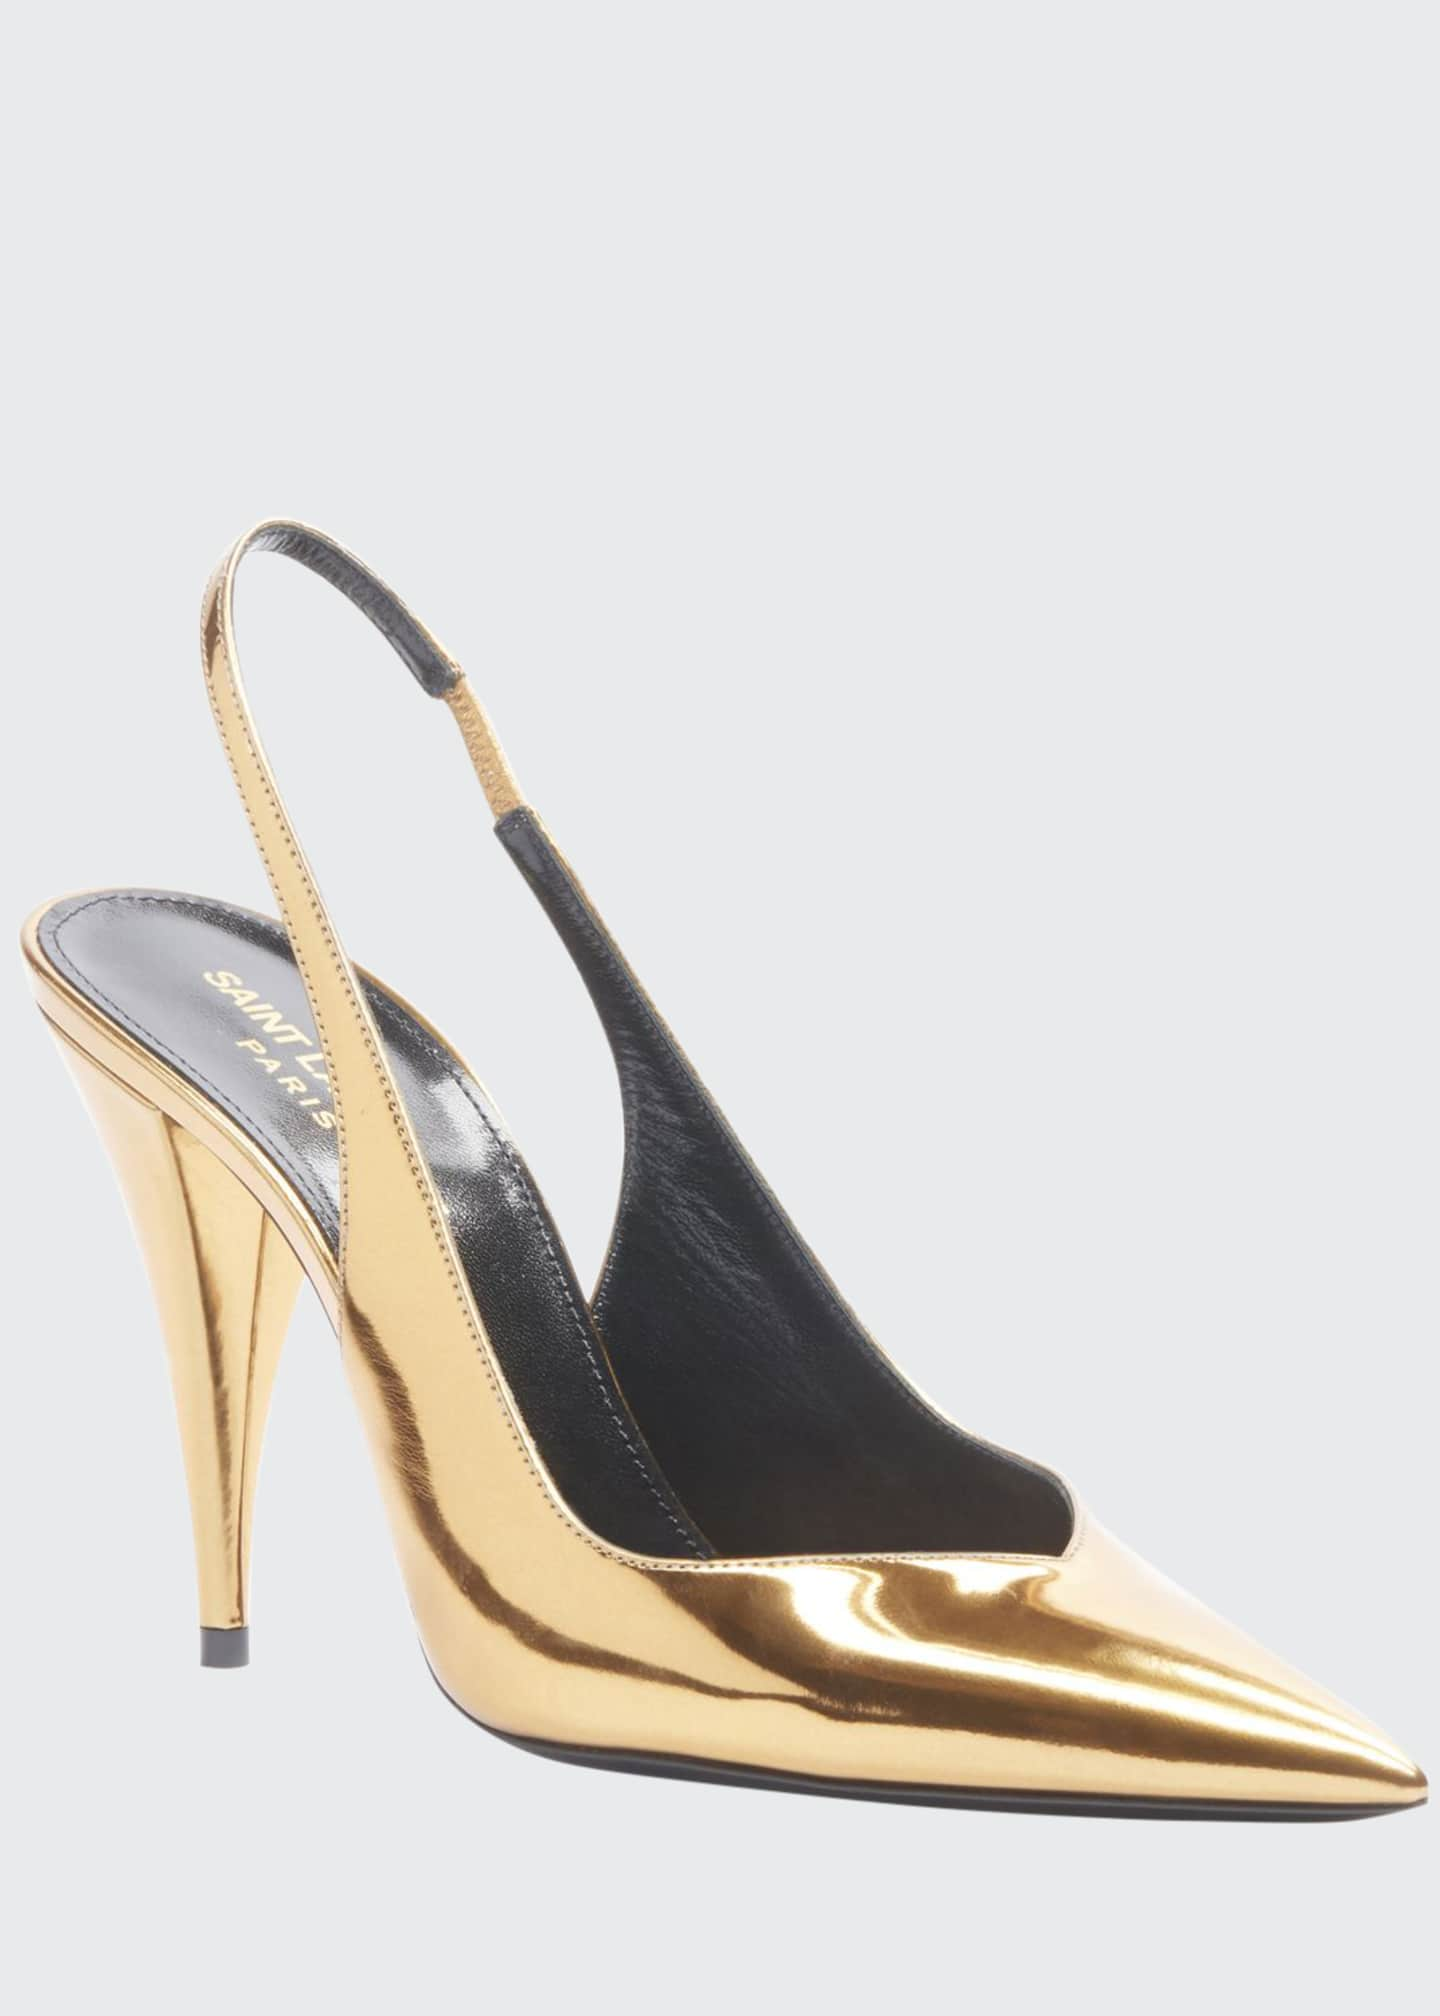 Saint Laurent Kiki Metallic Leather Slingback Pumps